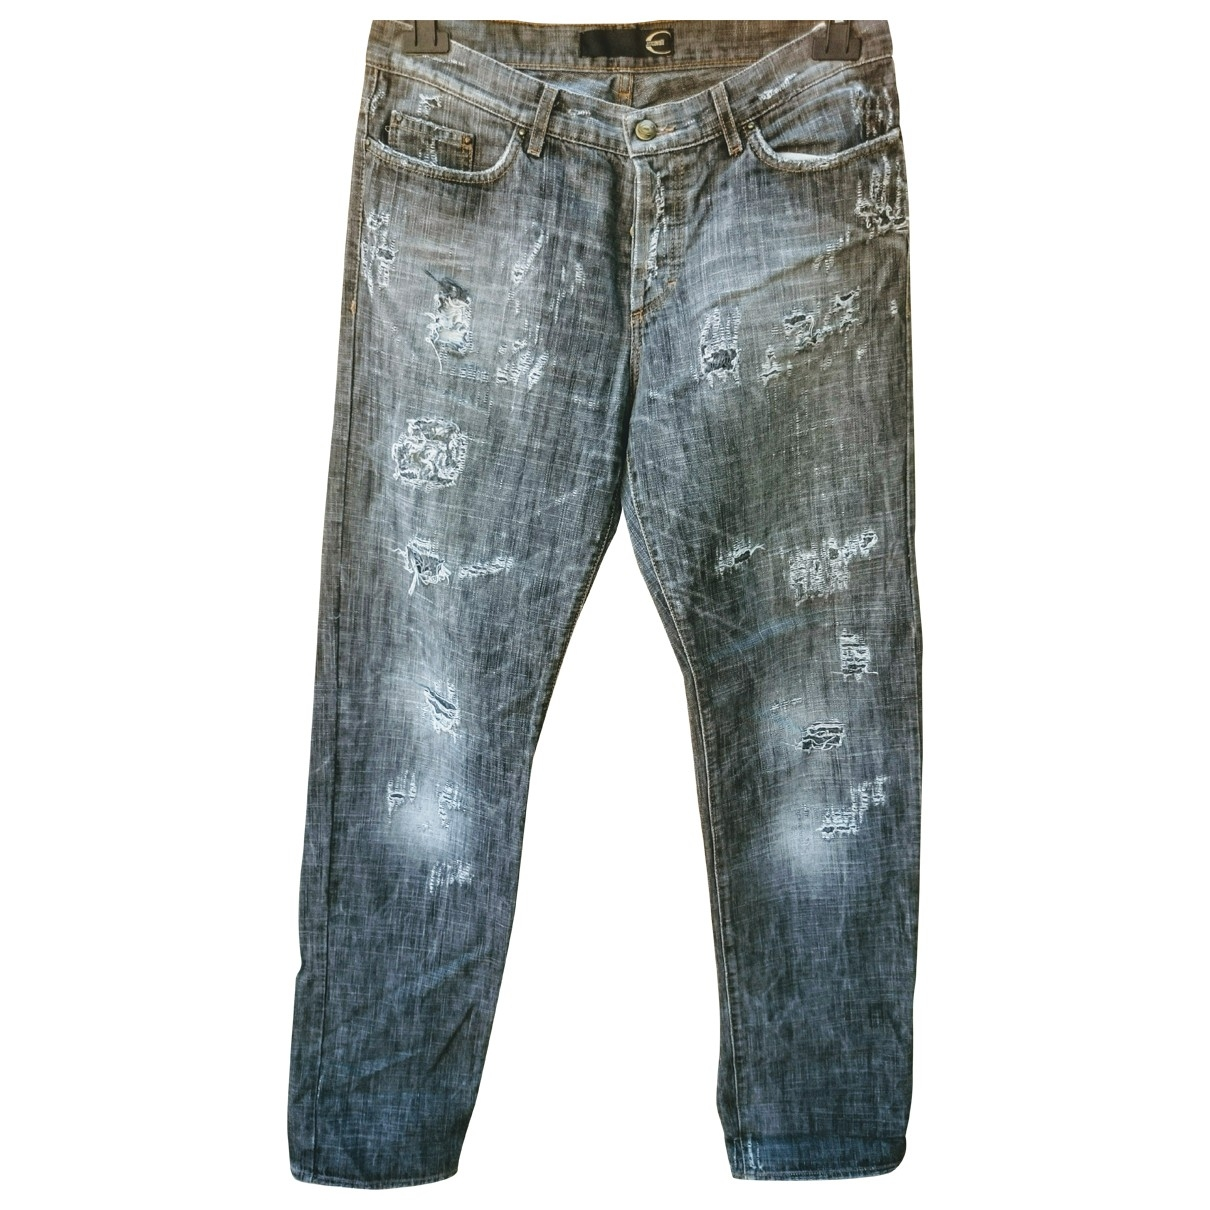 Just Cavalli \N Grey Cotton Jeans for Men 34 US